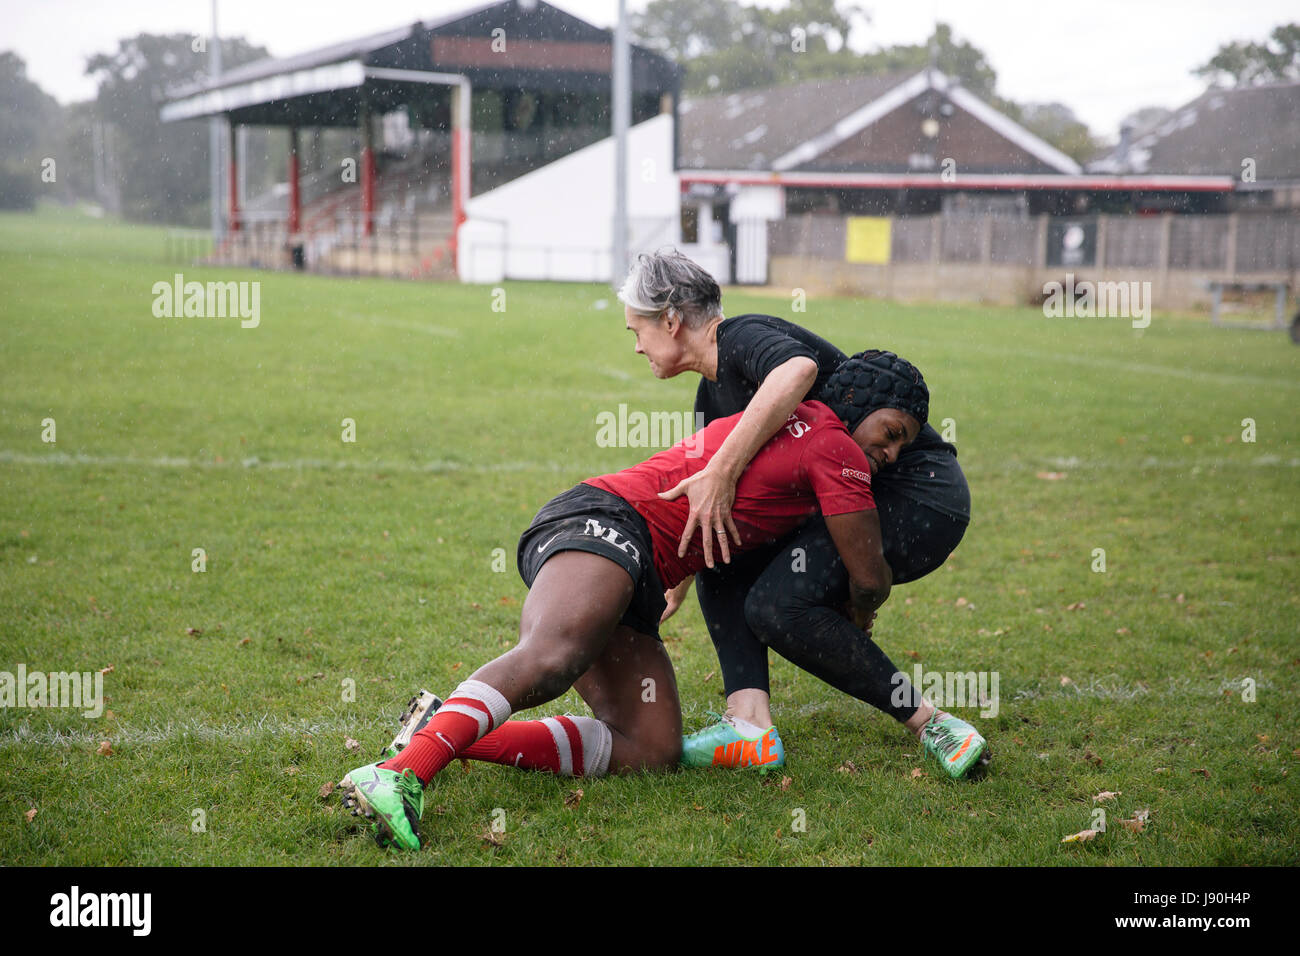 Ex-England rugby player Maggie Alphonsi tackles Lucy Killgren to the ground at the Saracens training ground. - Stock Image